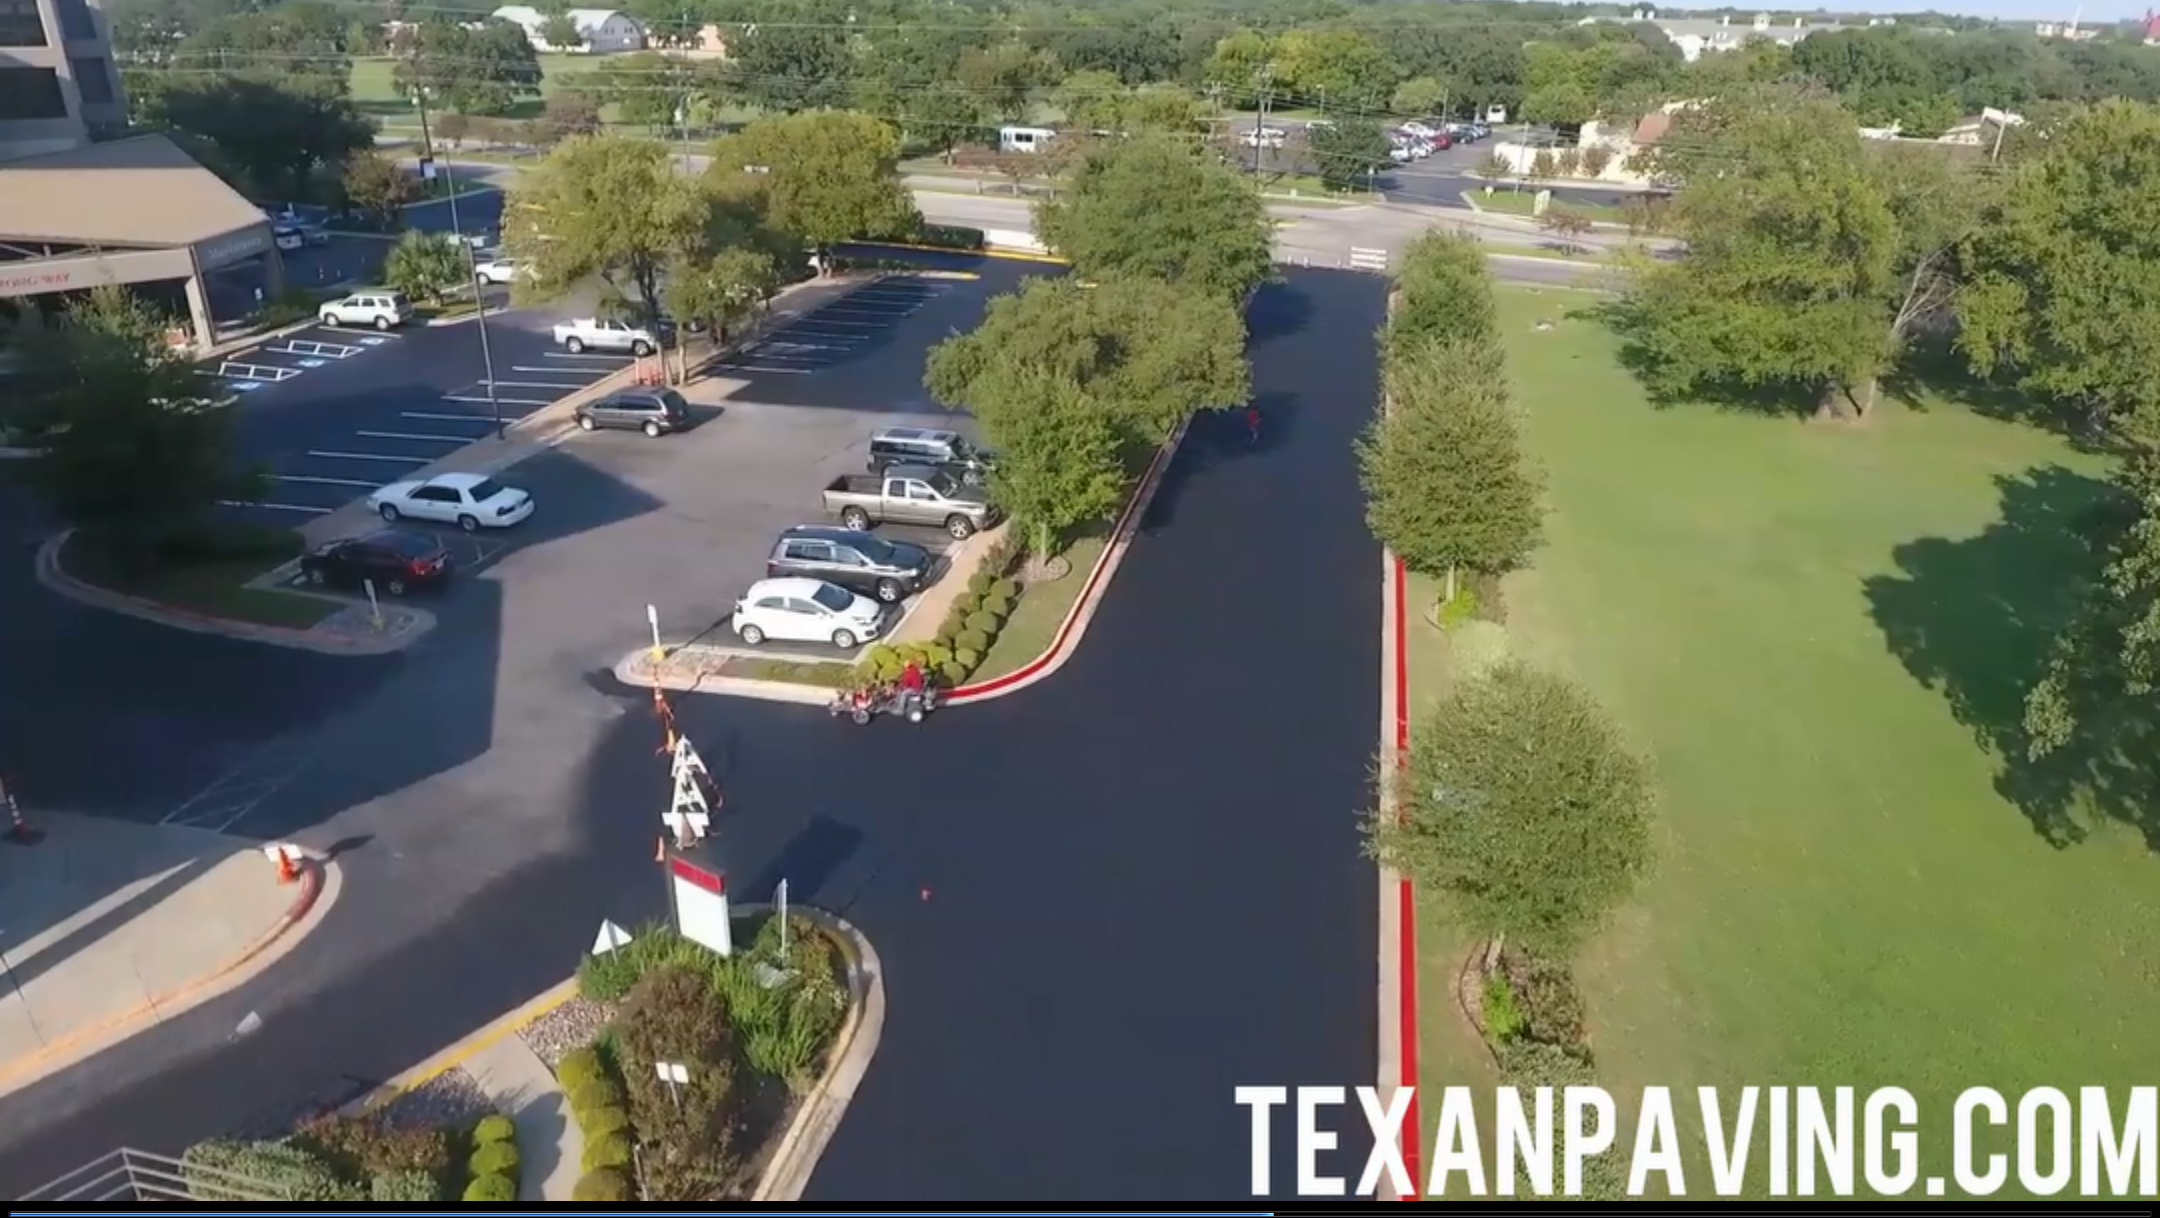 Commercial Sealcoating Striping Contractors In Austin Tx We Also Sealcoat And Stripe Parking Lots In Round Rock Le Parking Lot Striping Lakeway Cedar Park